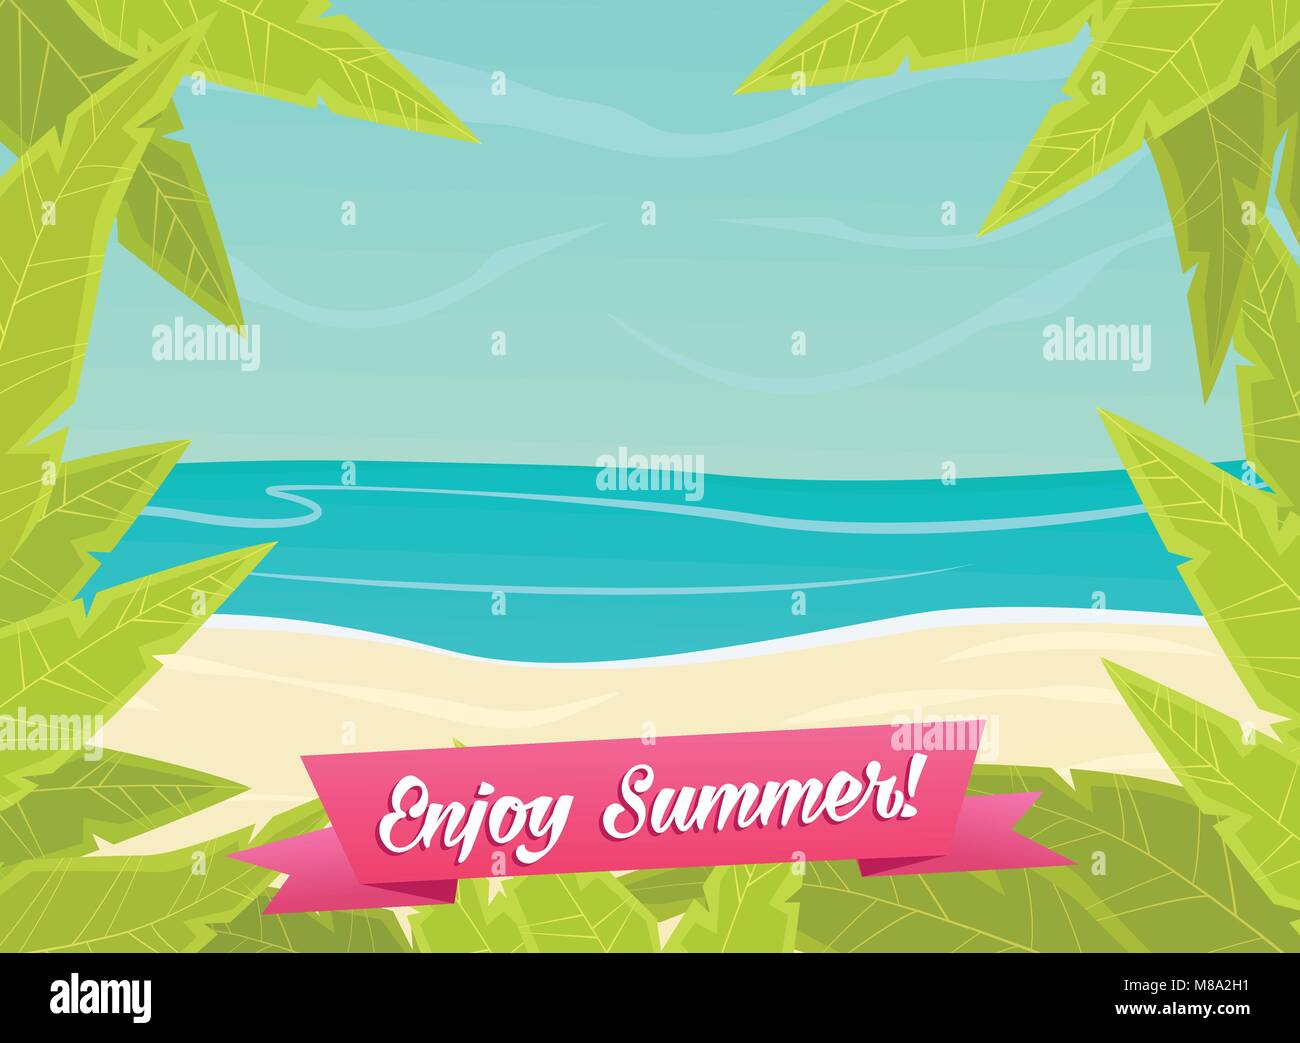 Summer or spring time background - Stock Vector